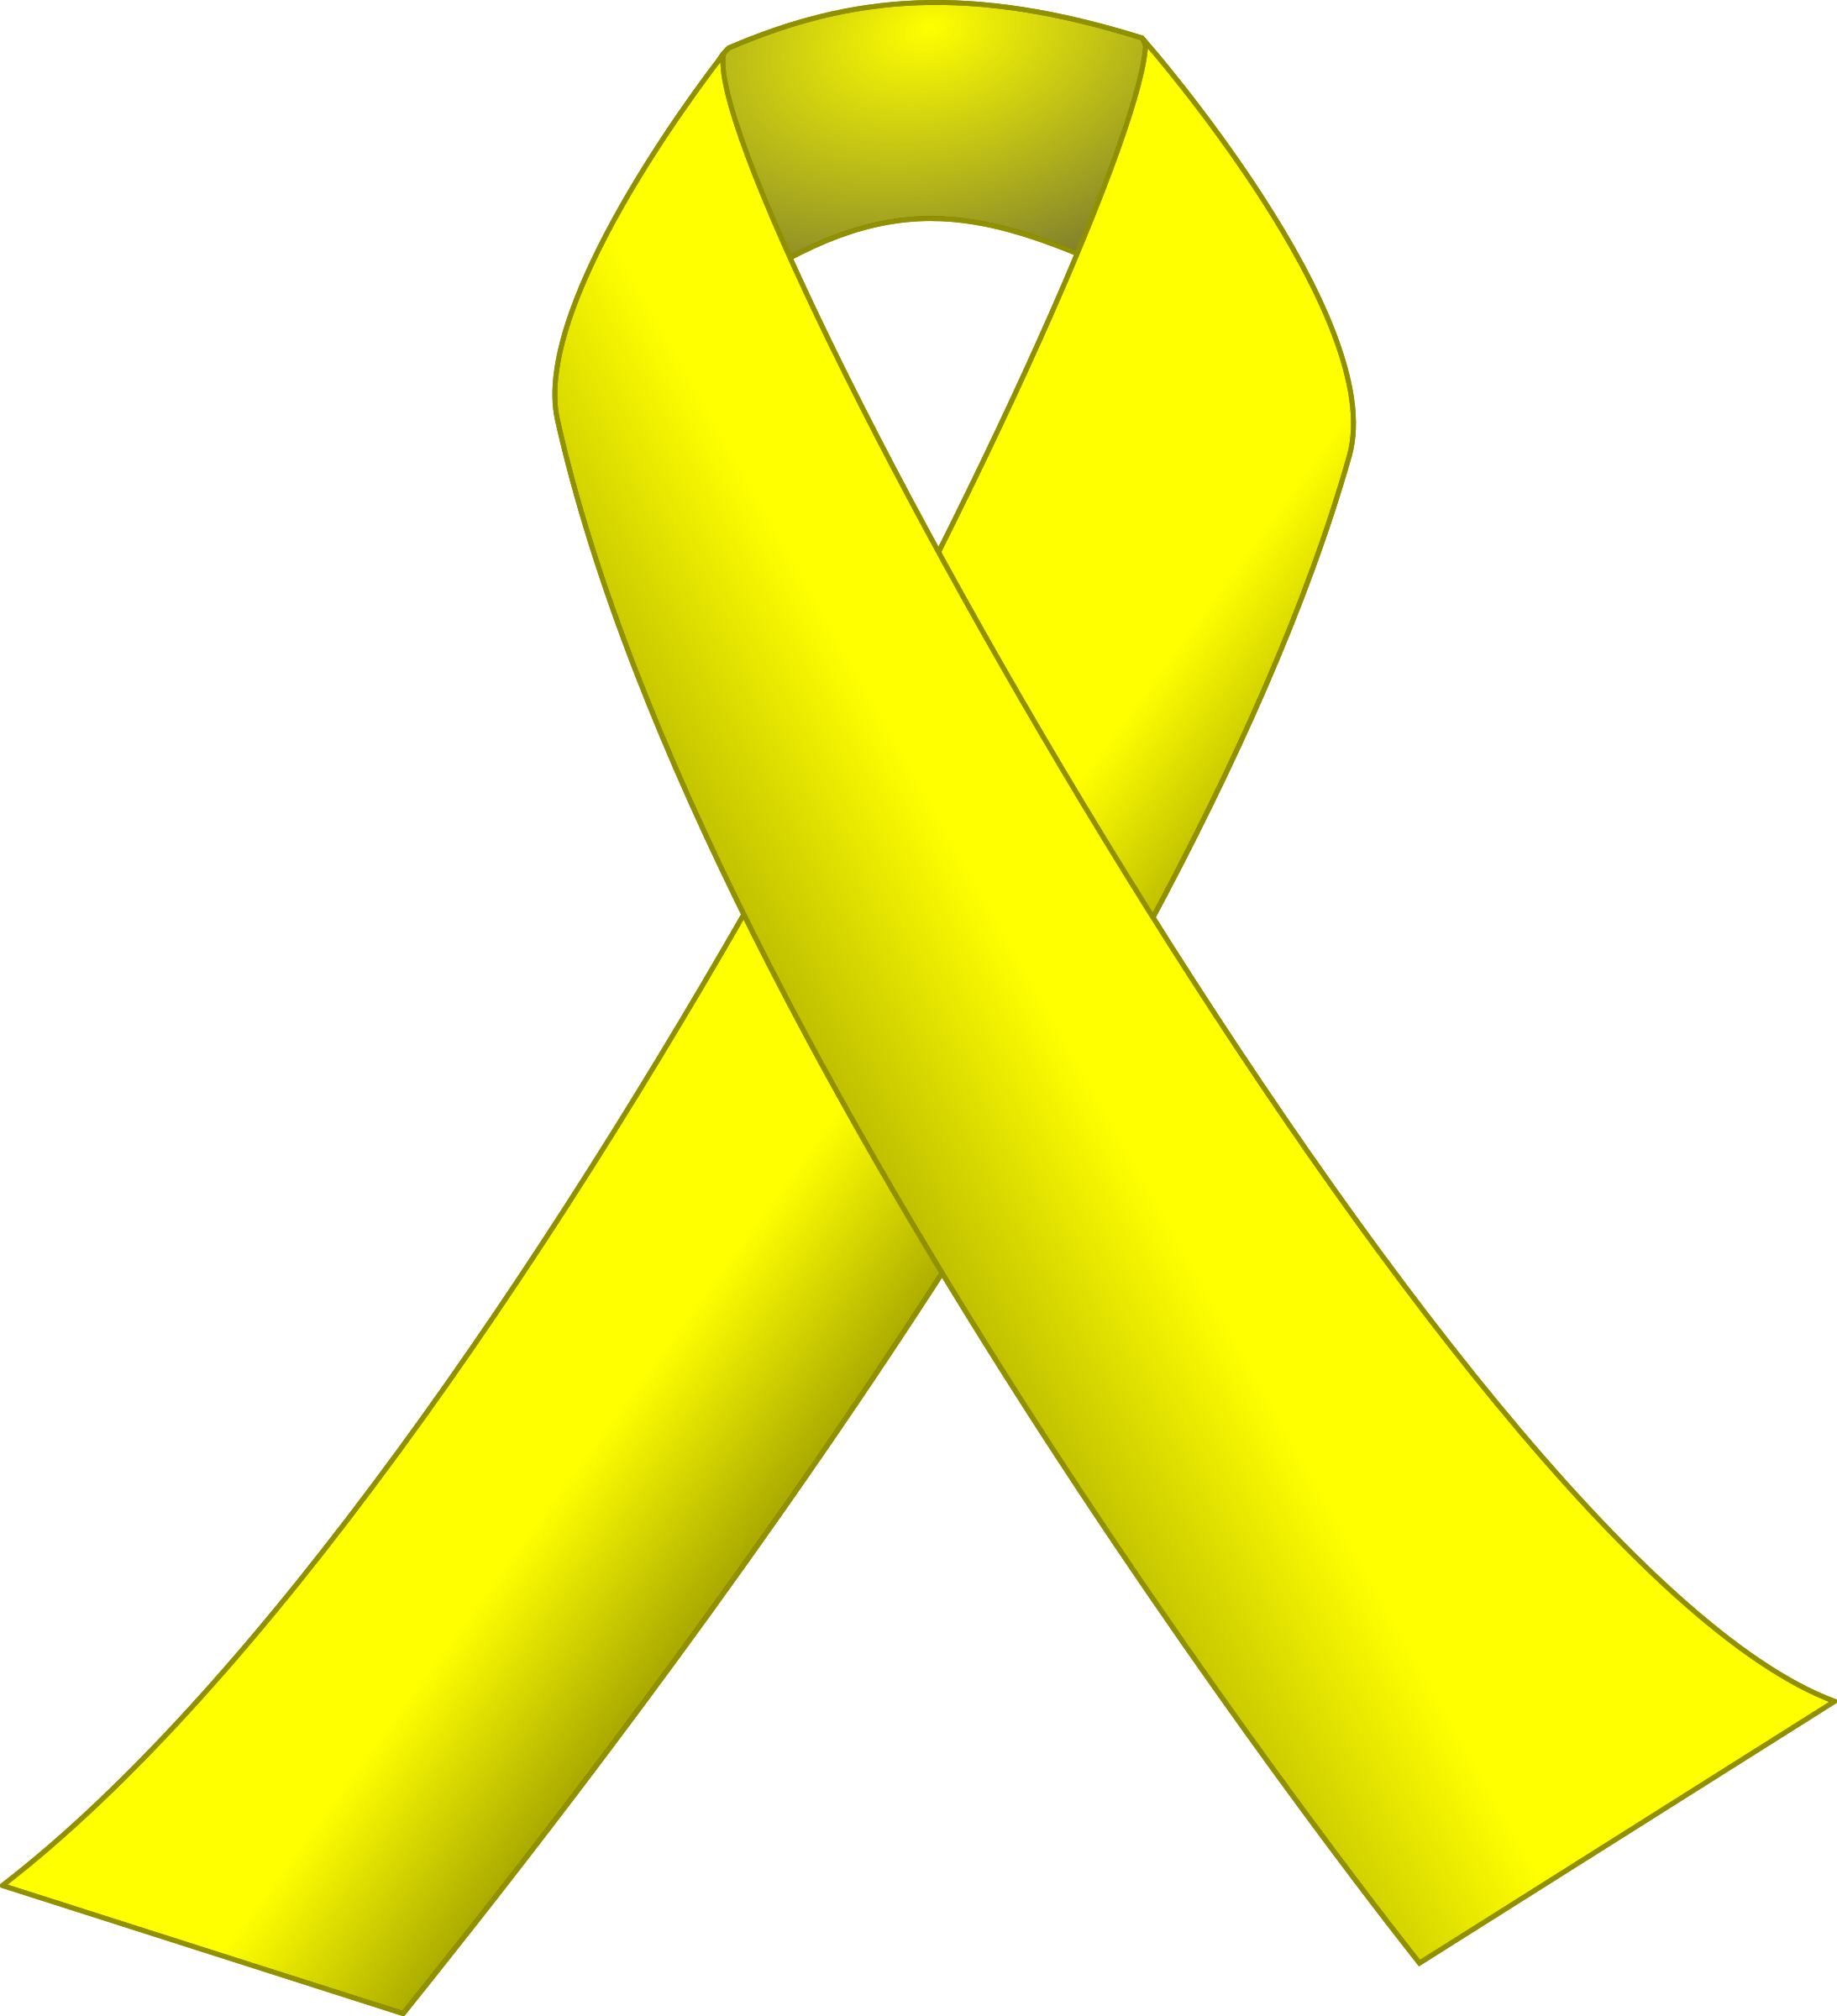 Yellow ribbon by J_Alves